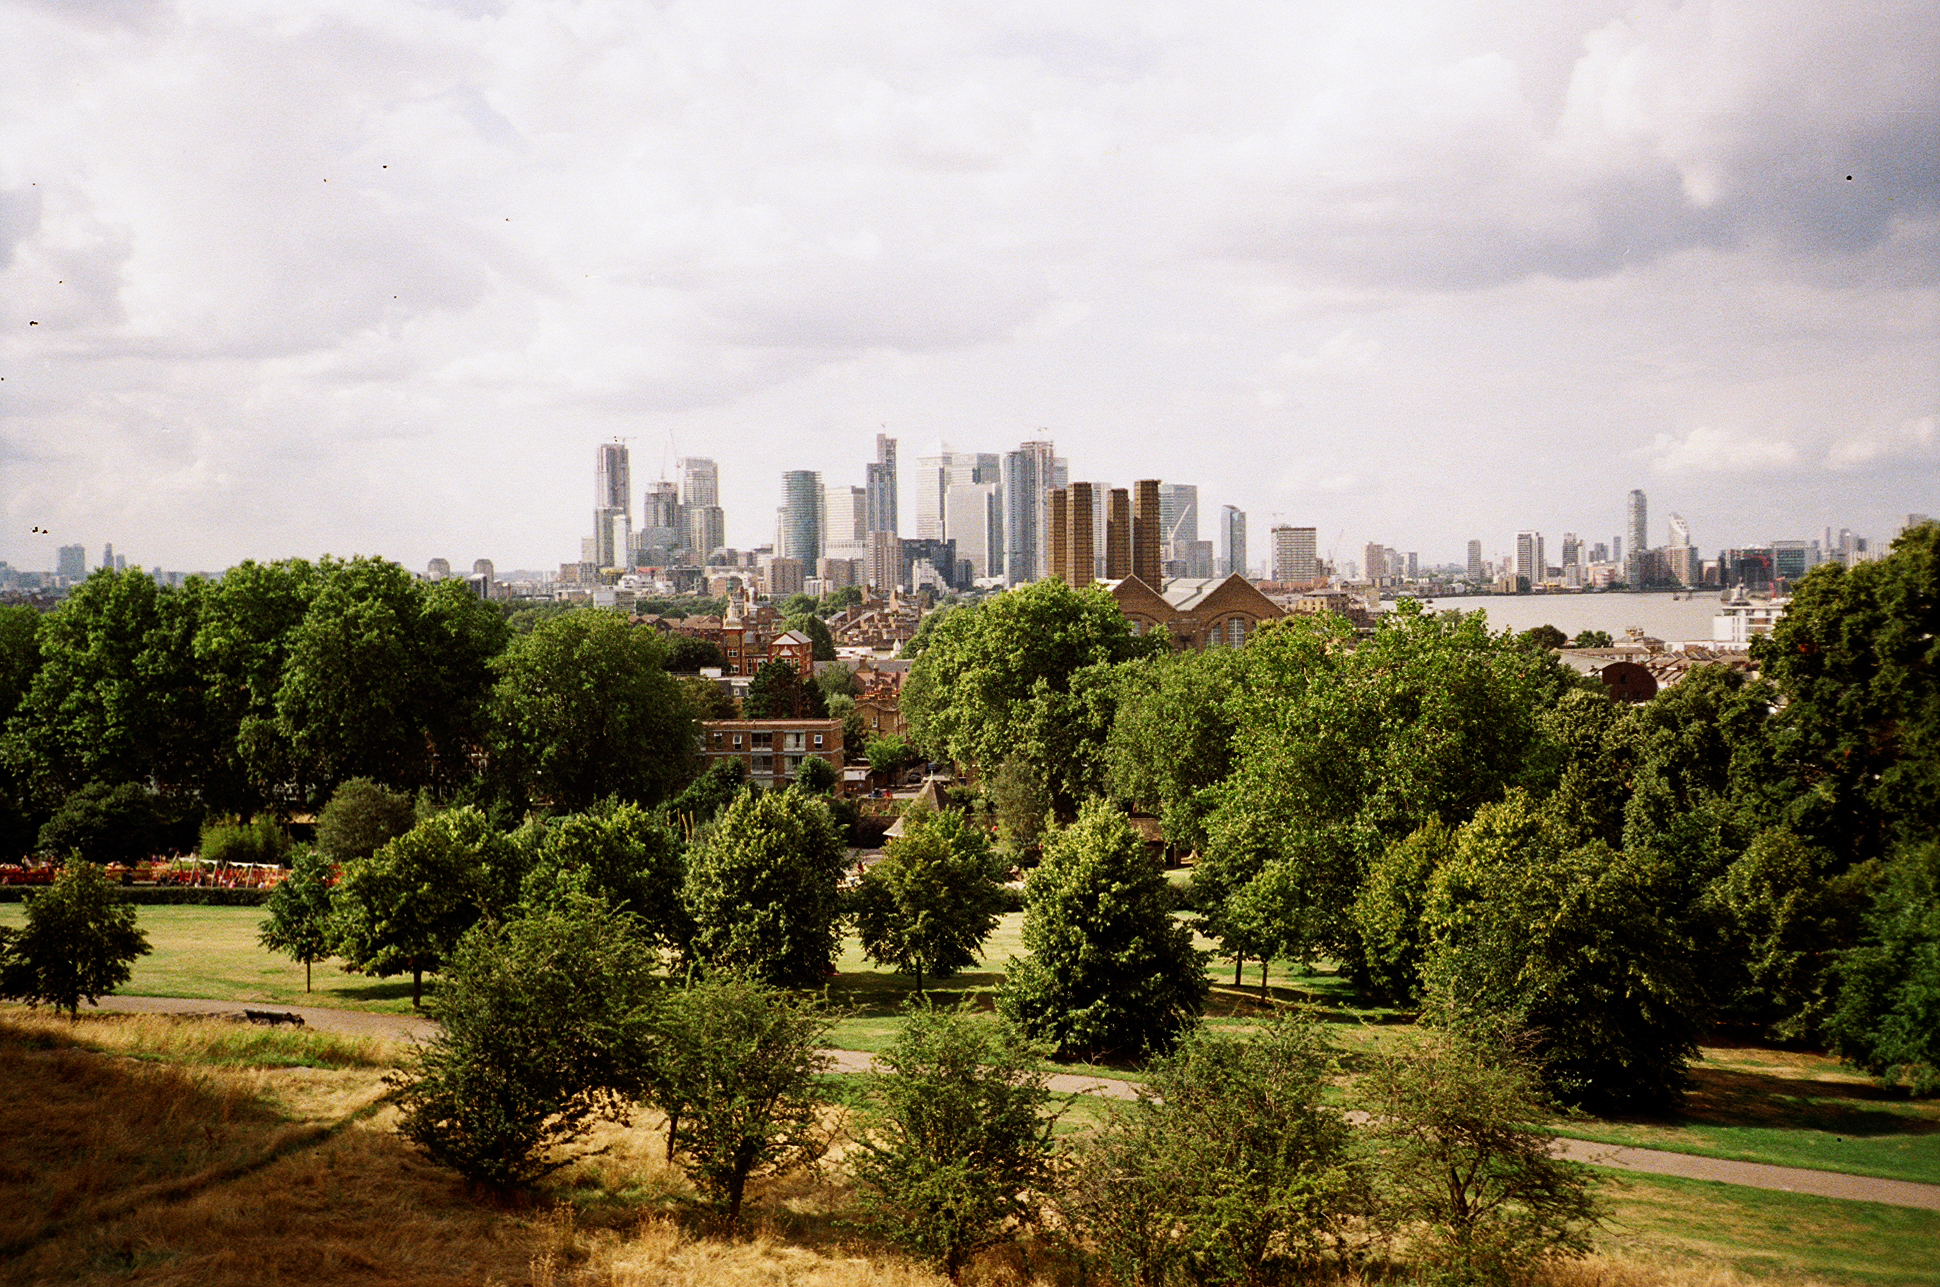 Greenwich view 35mm film diary by London based photographer Ailera Stone